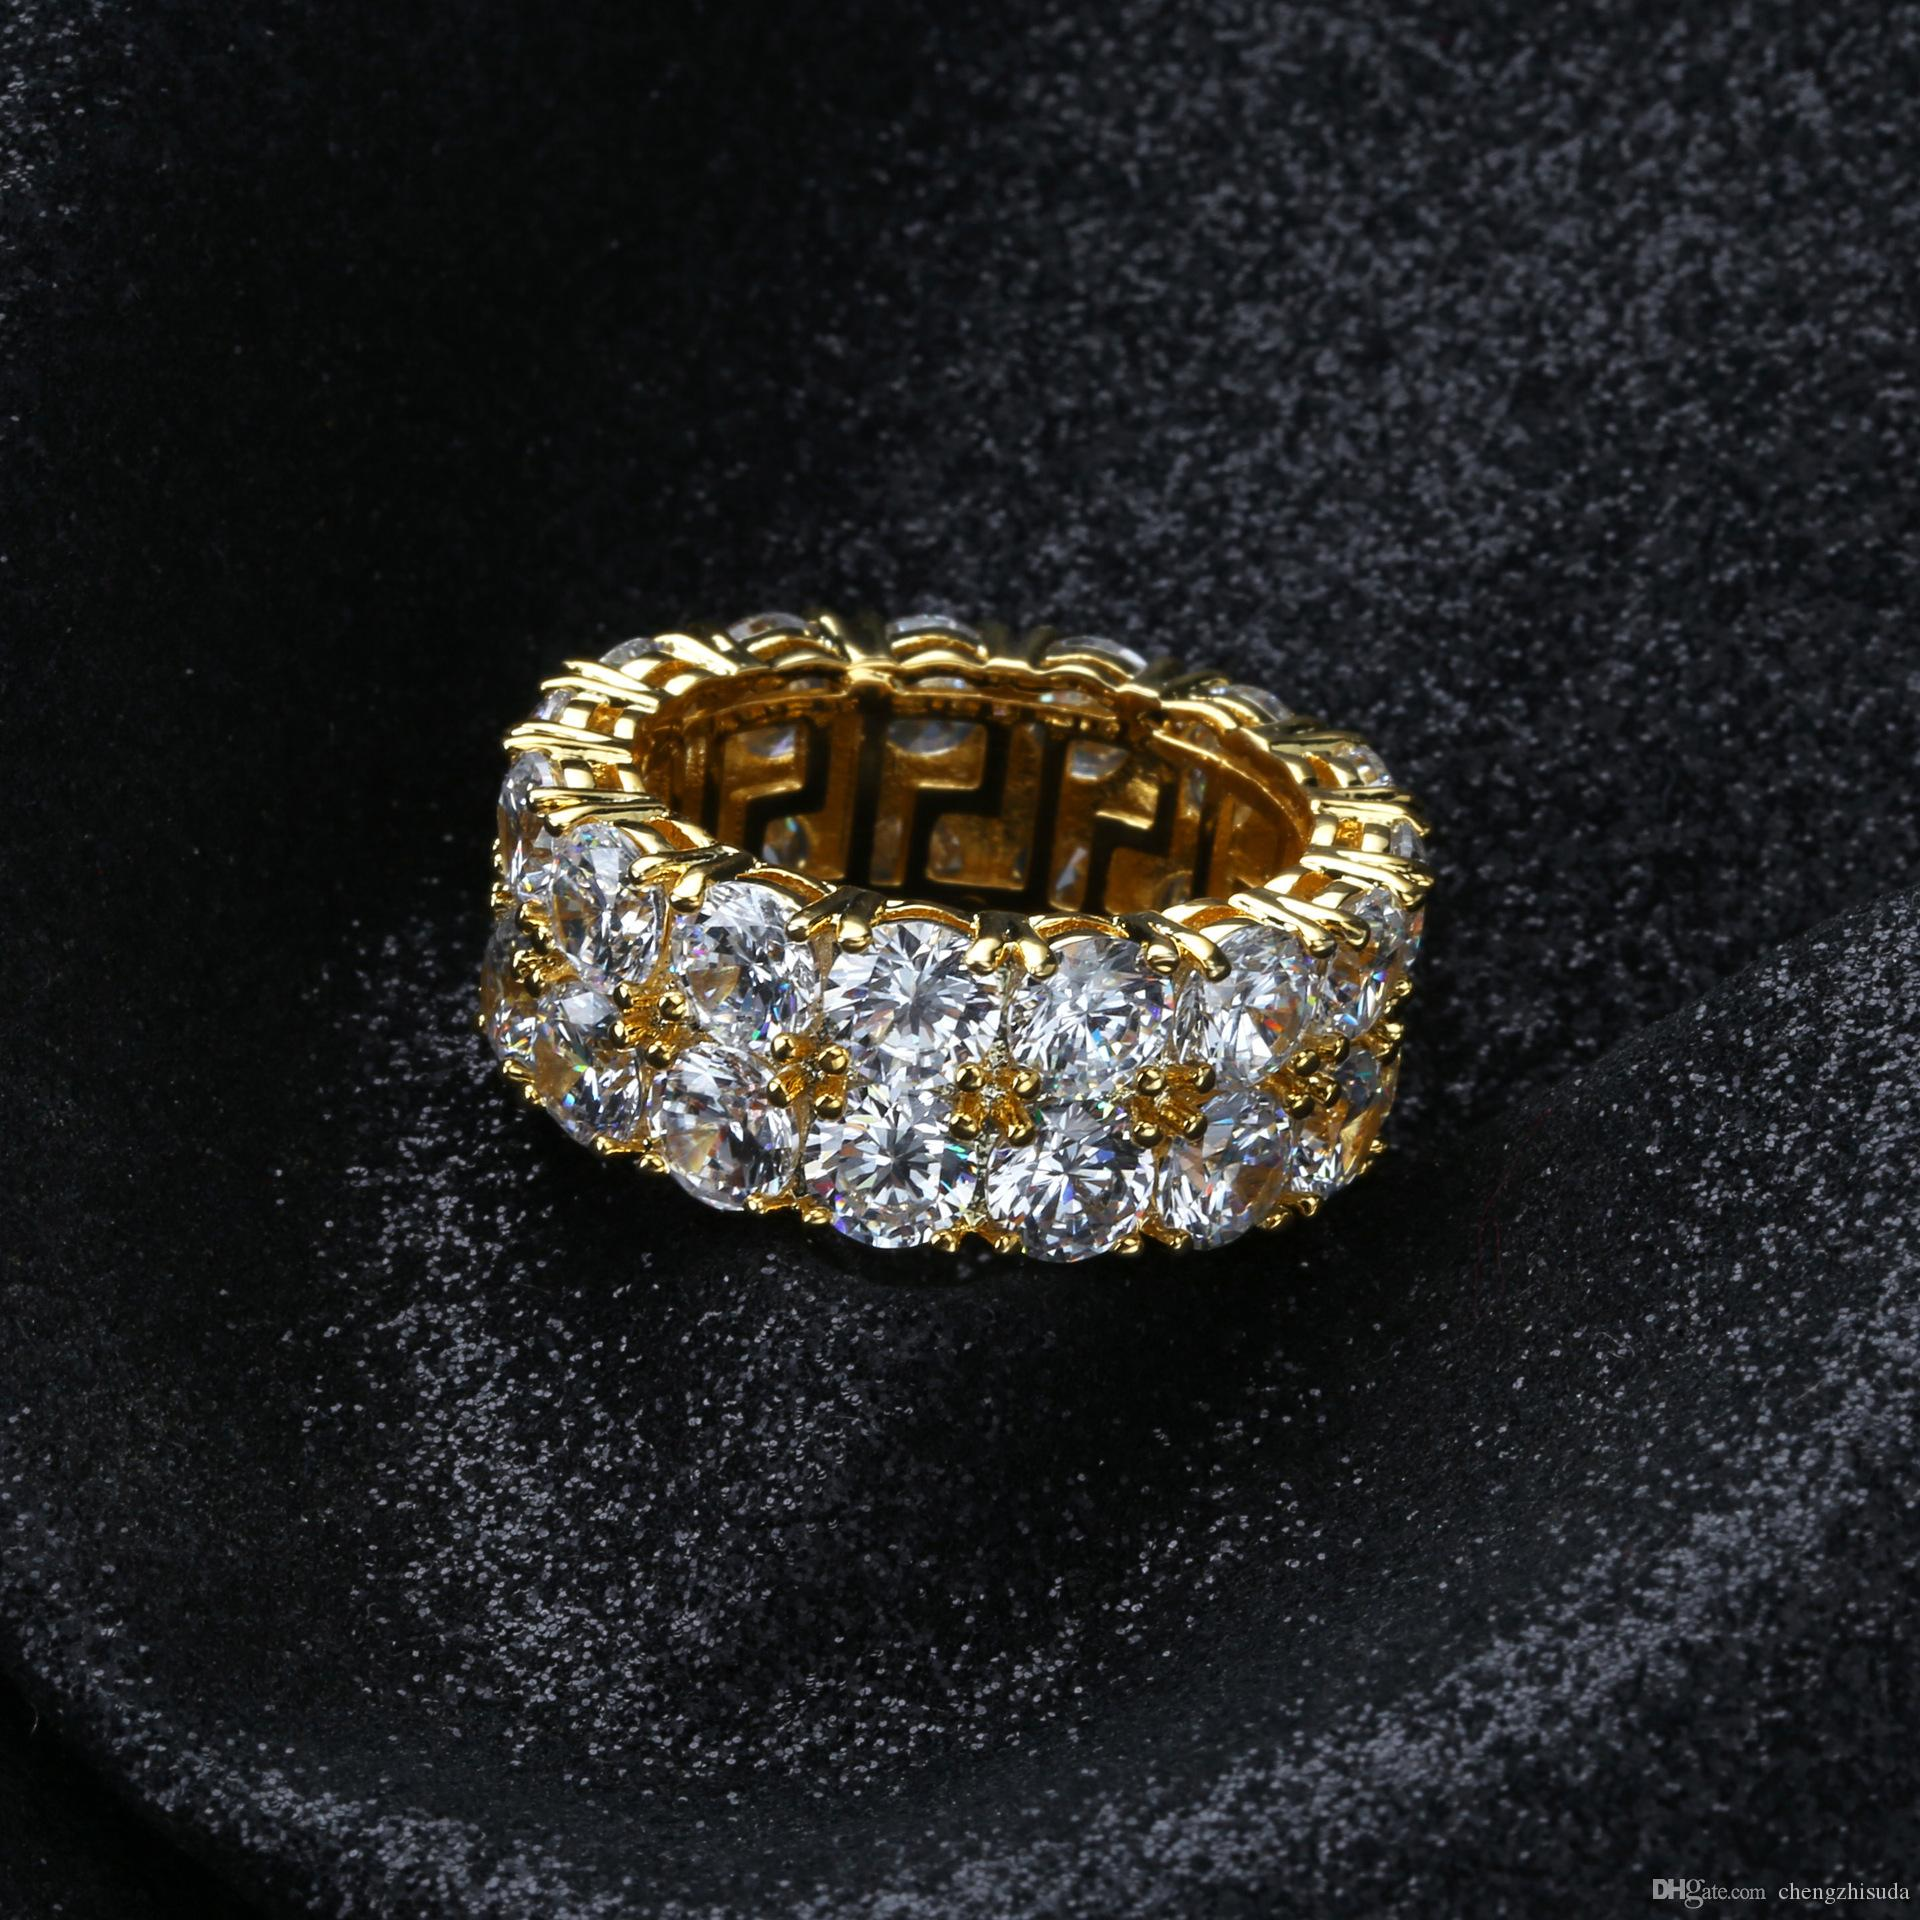 Size 7-12 Hip Hop 2 Row Round Solitaire Zircon Tennis Ring for Men Women Gold Silver Colors